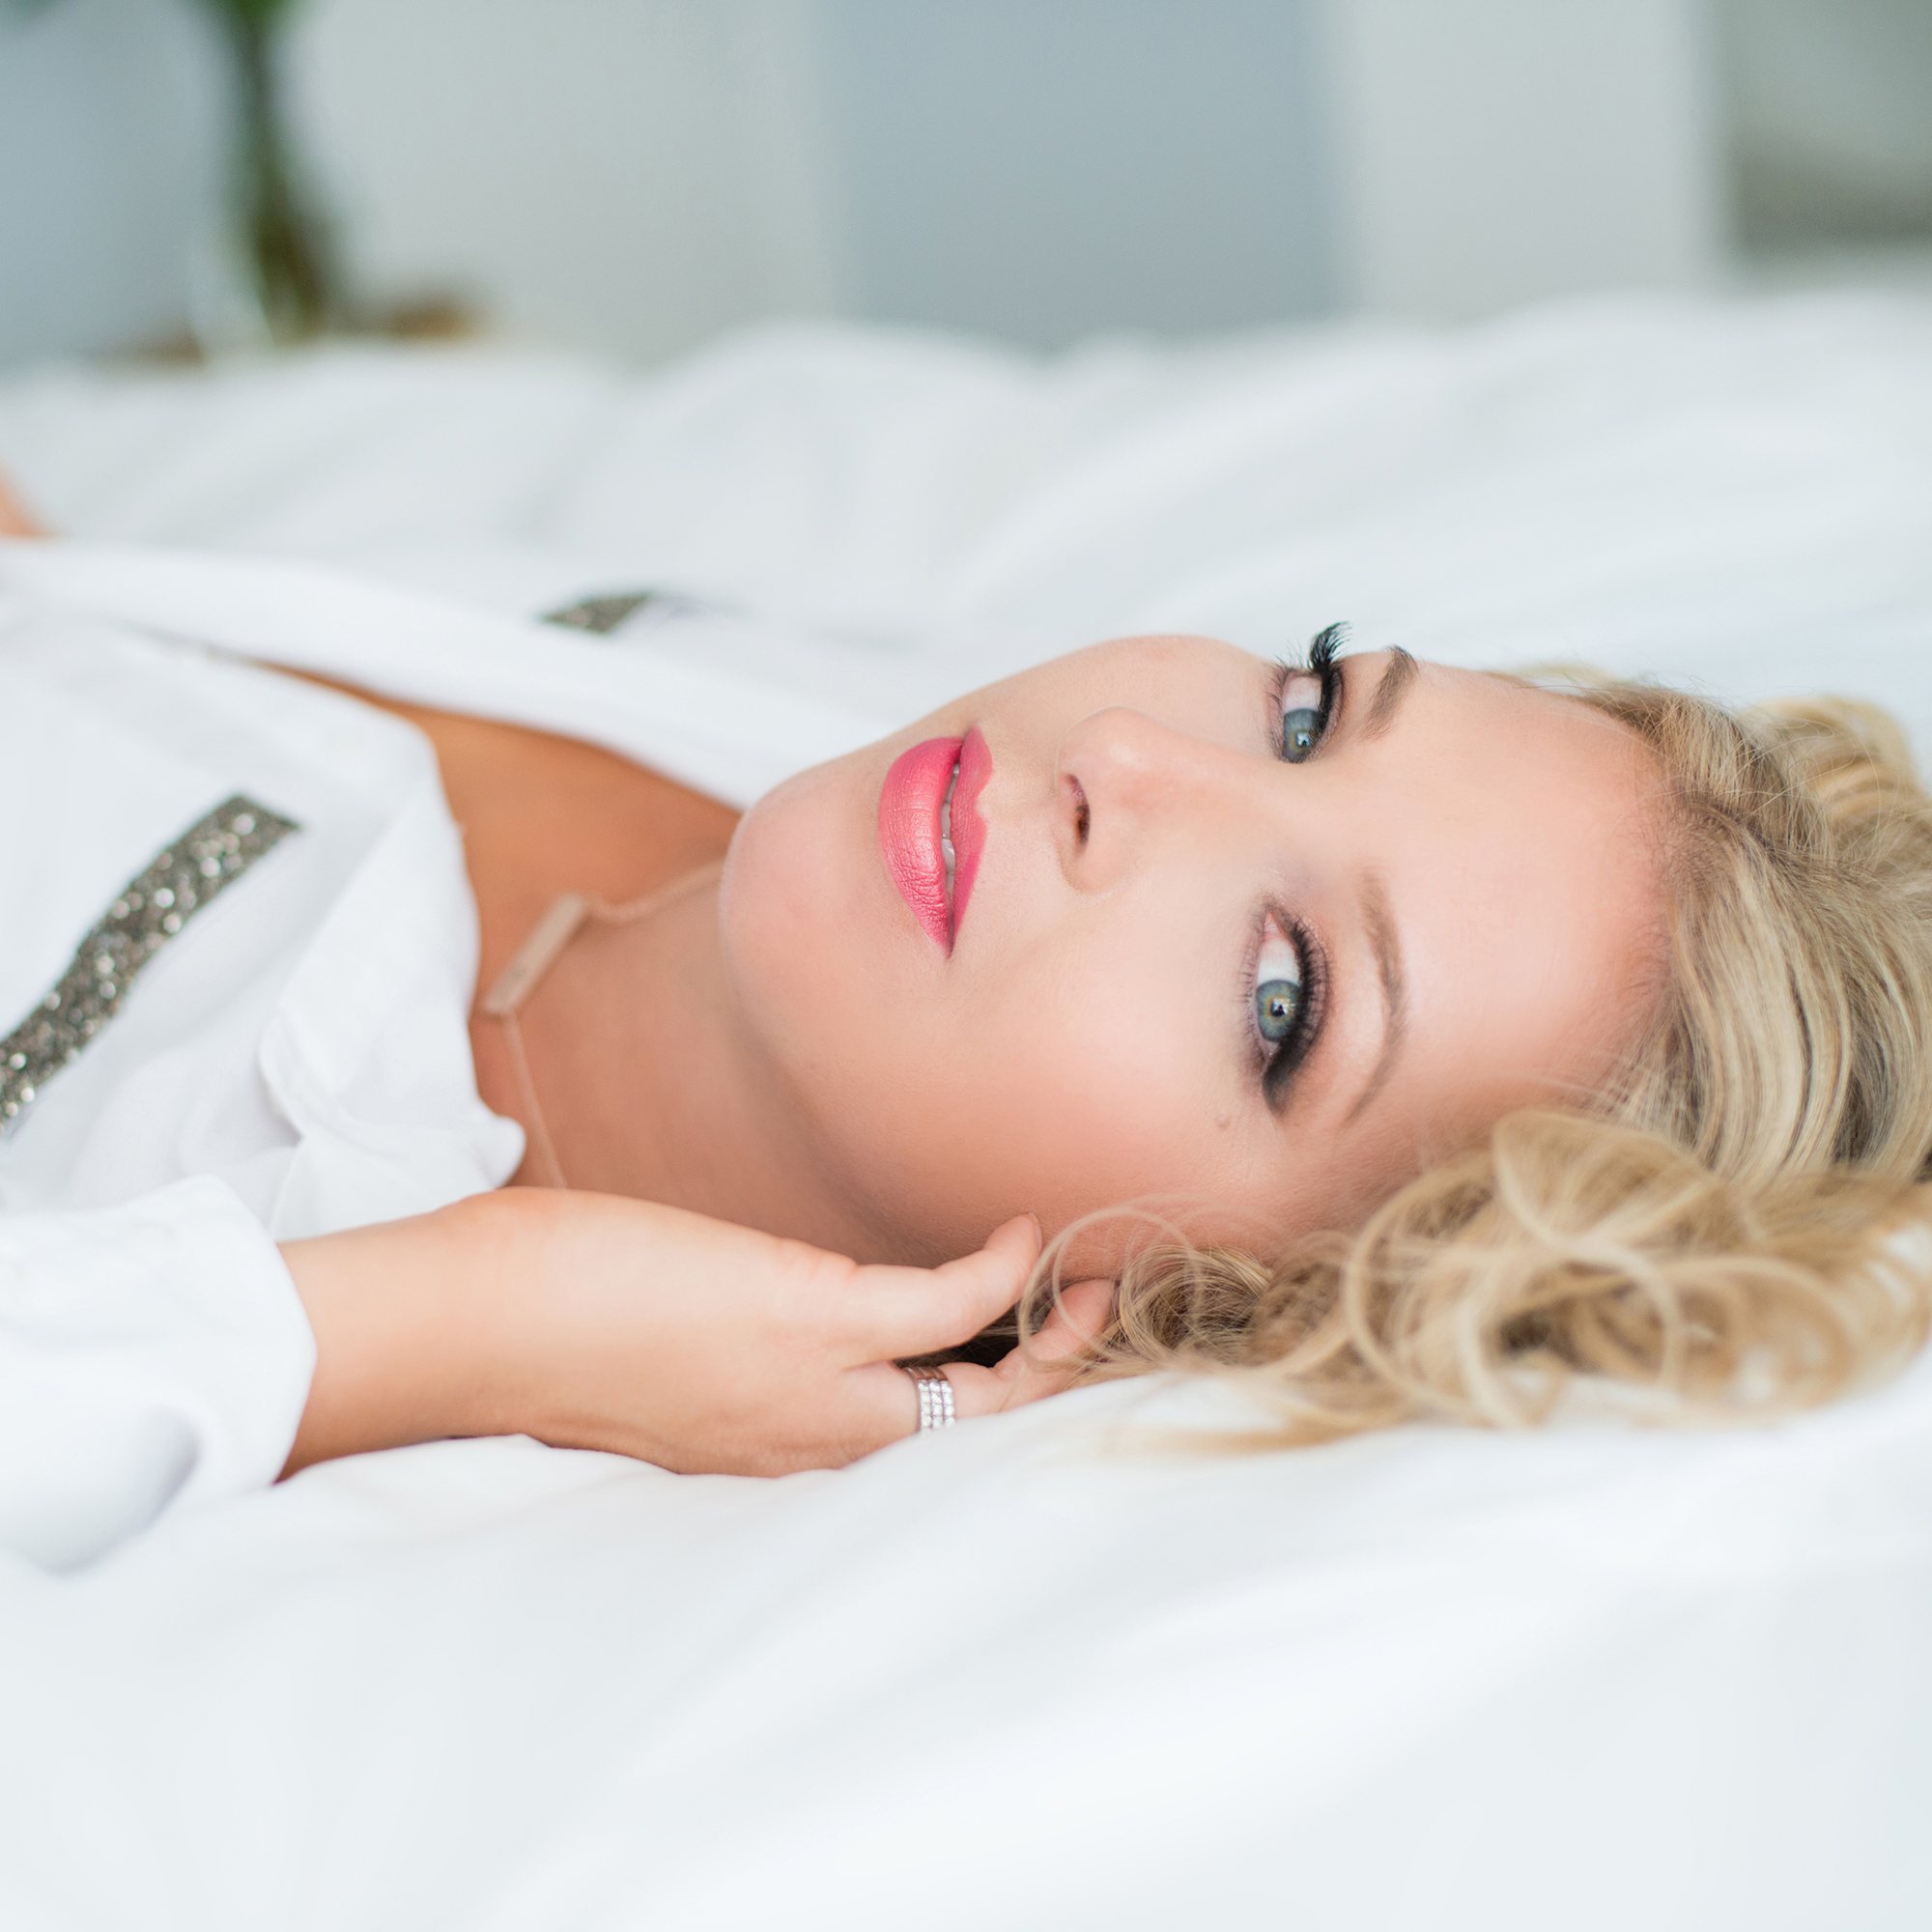 Beautiful blonde woman with piercing blue eyes laying on white bedding at LGEmerick Photography's studio